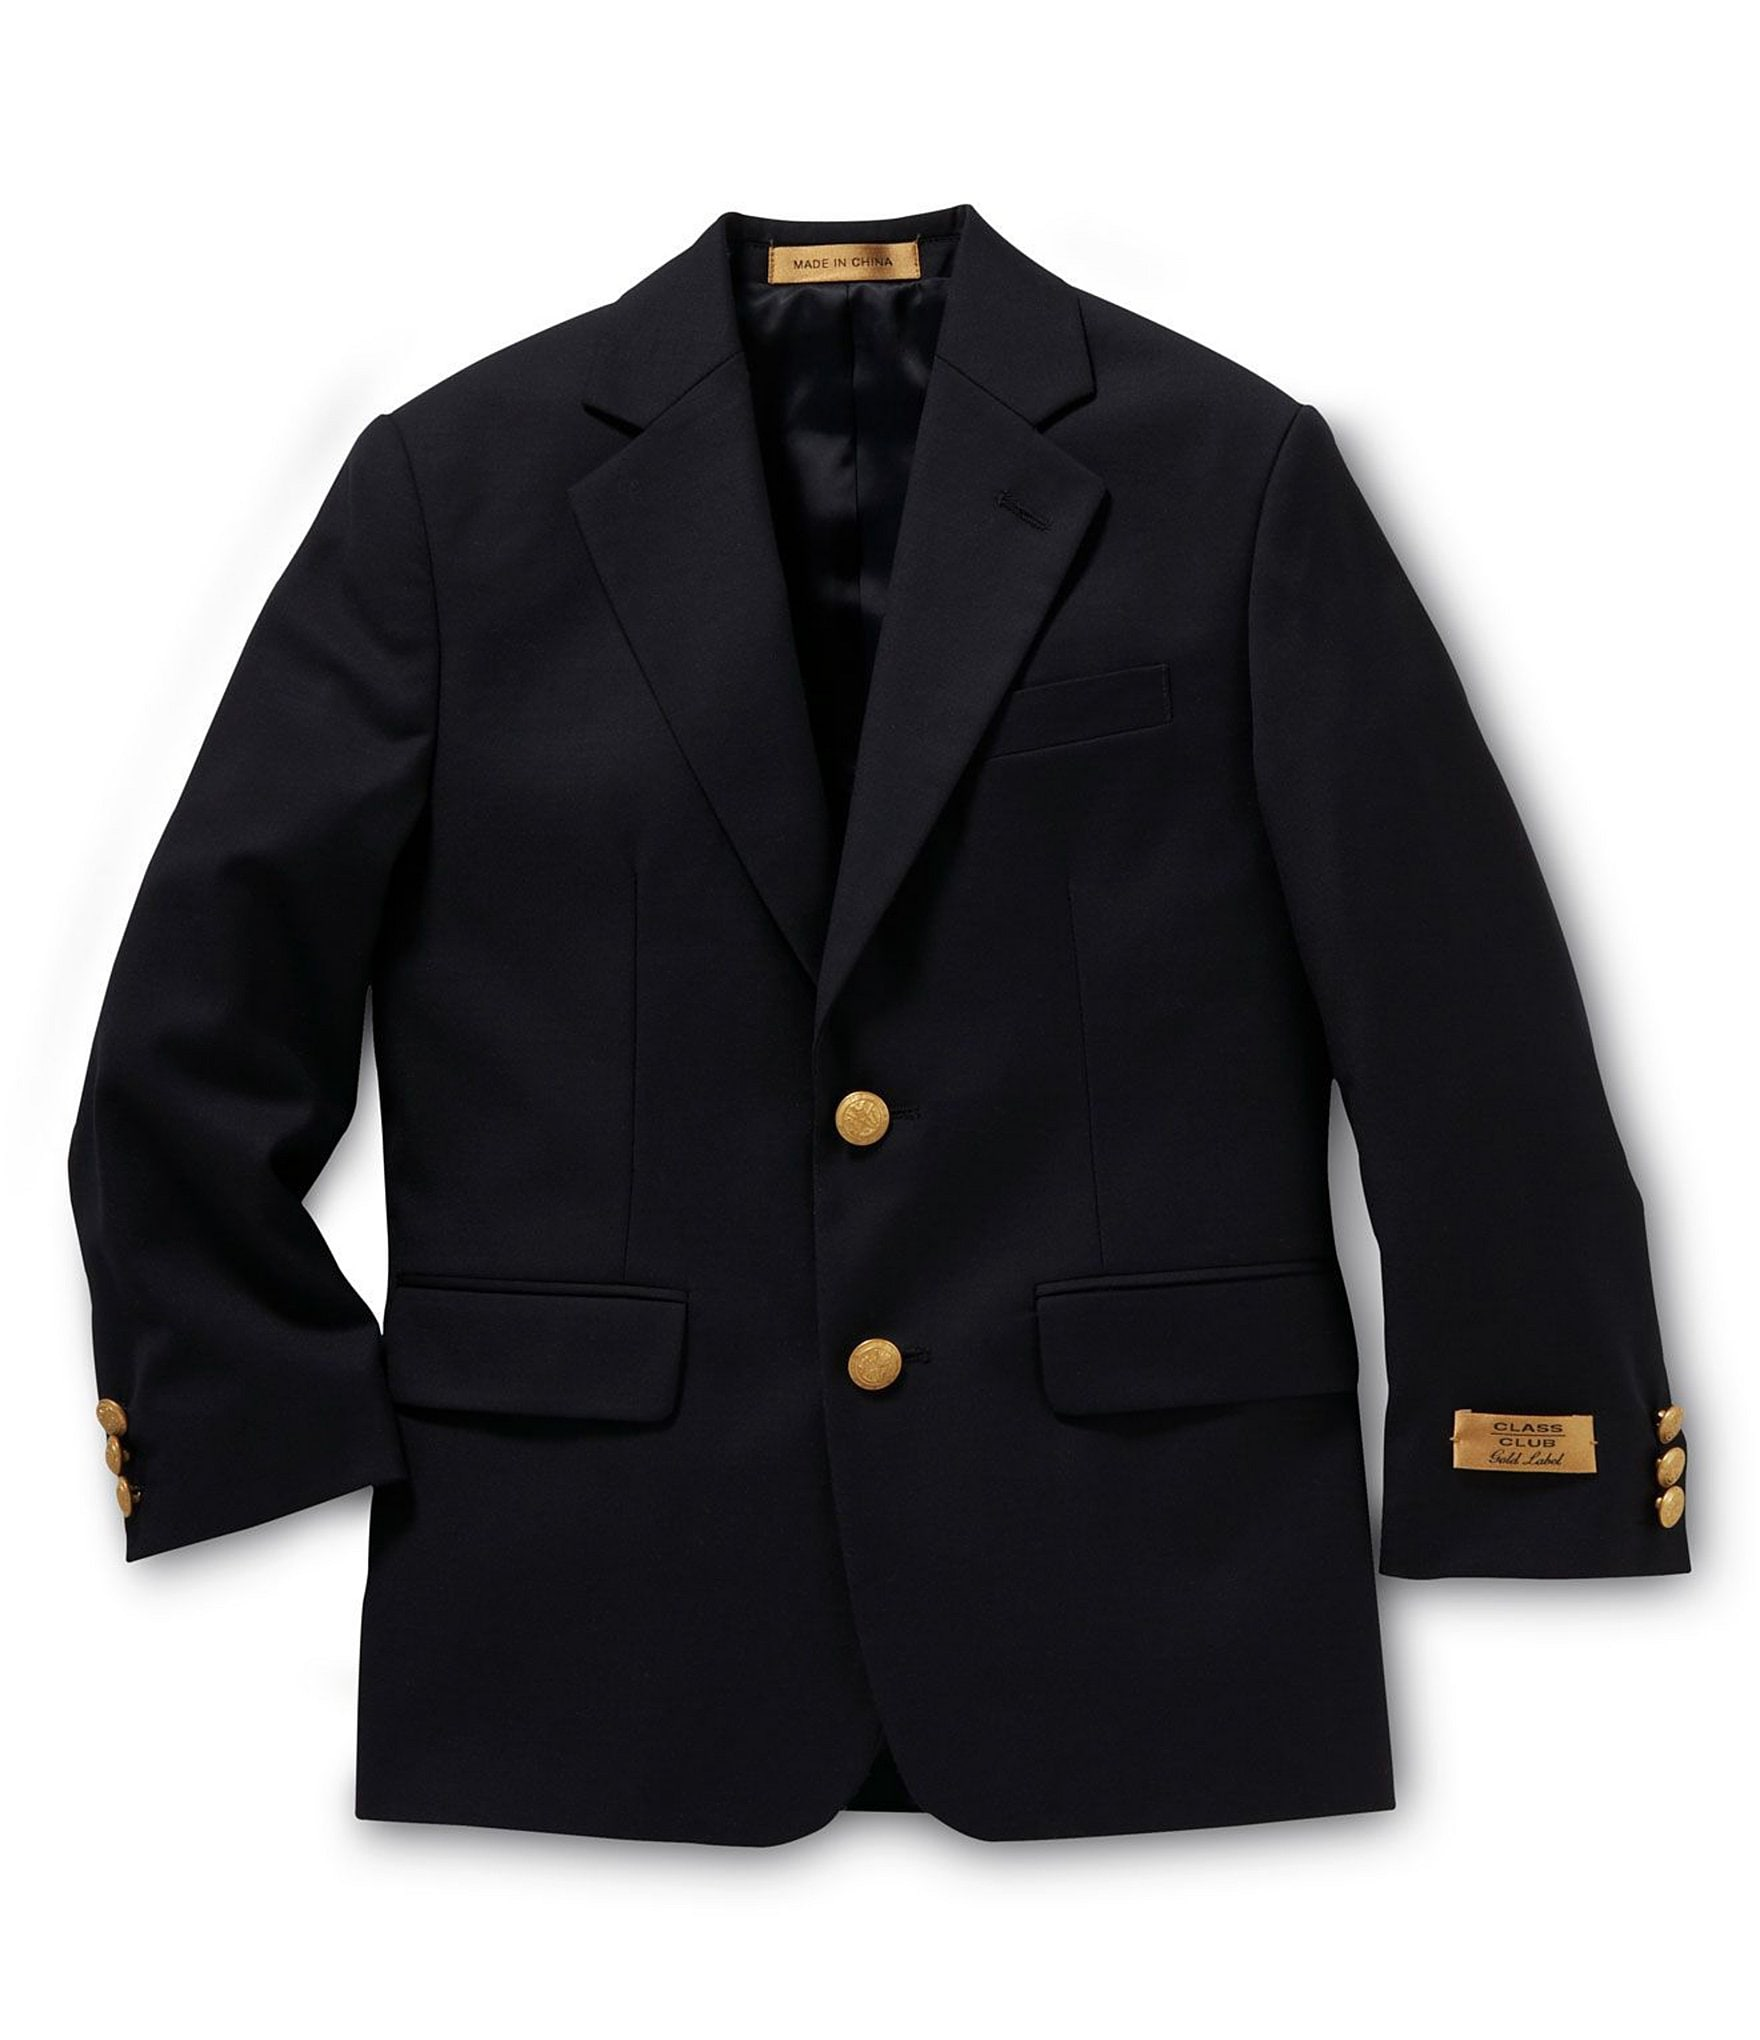 Big Boys () Boys' Suits & Boys' Dress Shirts at Macy's come in a variety of styles and sizes. Shop Big Boys () Boys' Suits & Boys' Dress Shirts at Macy's and find the latest styles for .